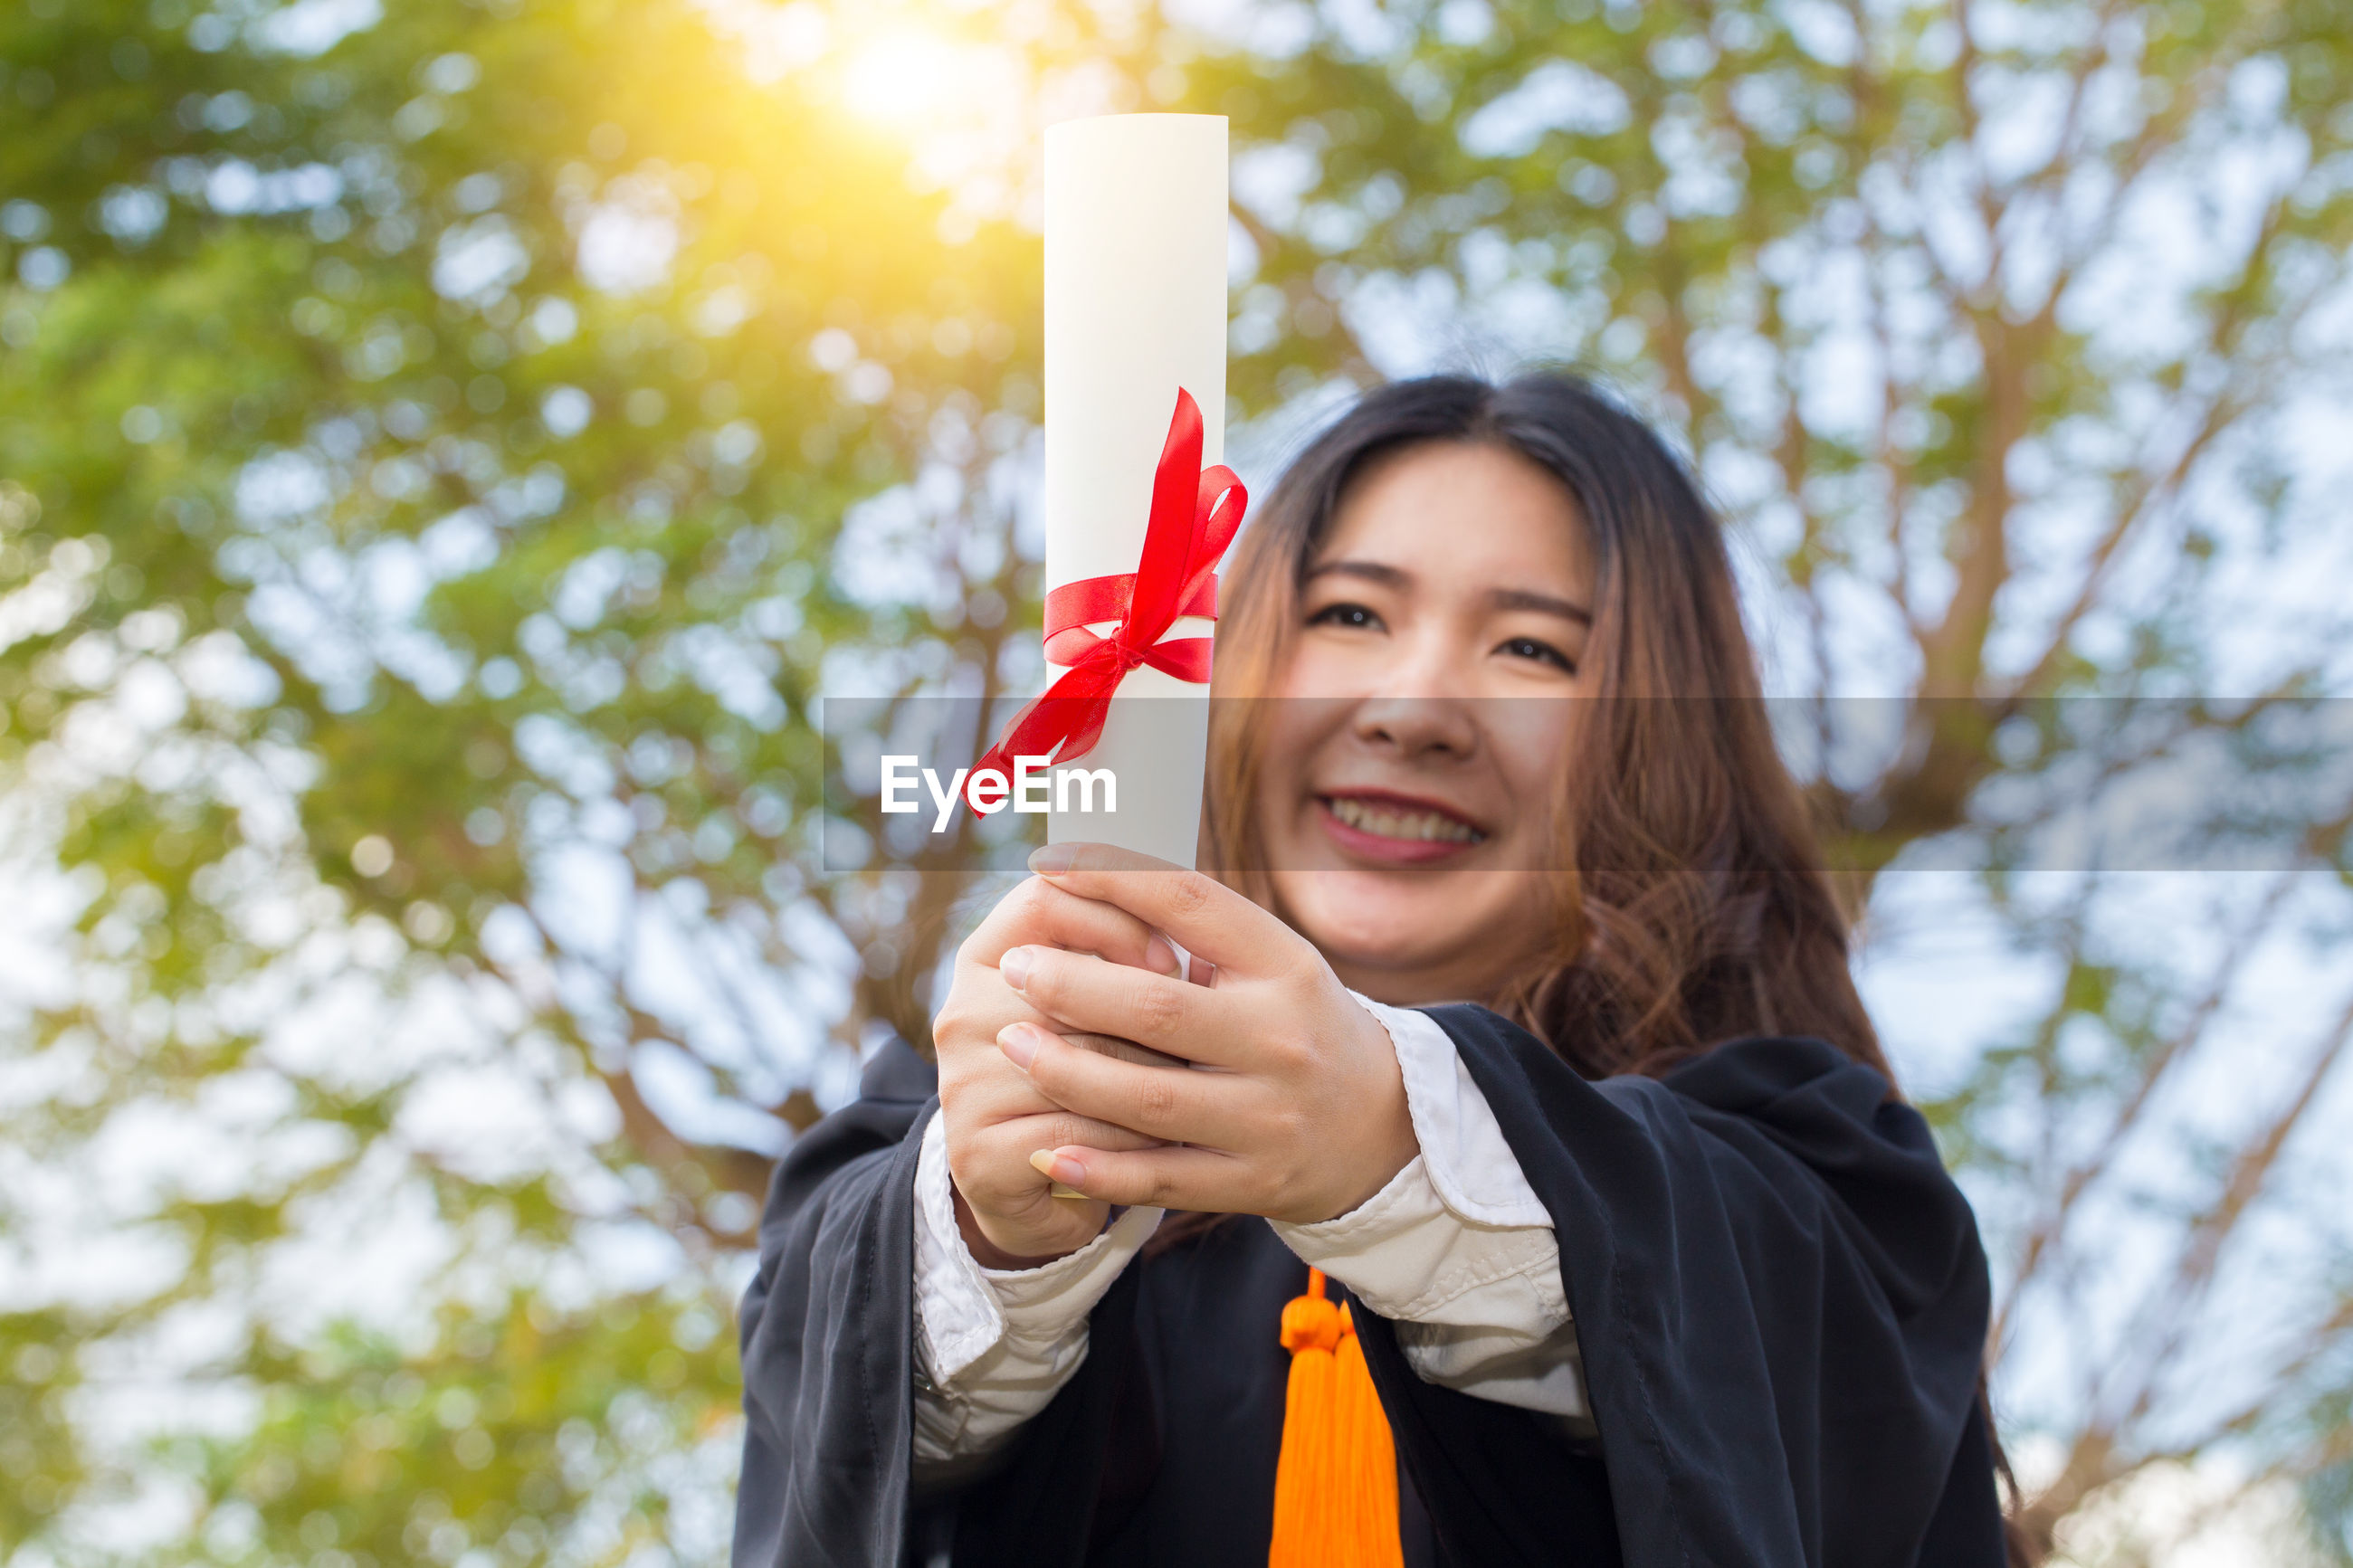 Smiling young woman wearing graduation gown while holding diploma against trees